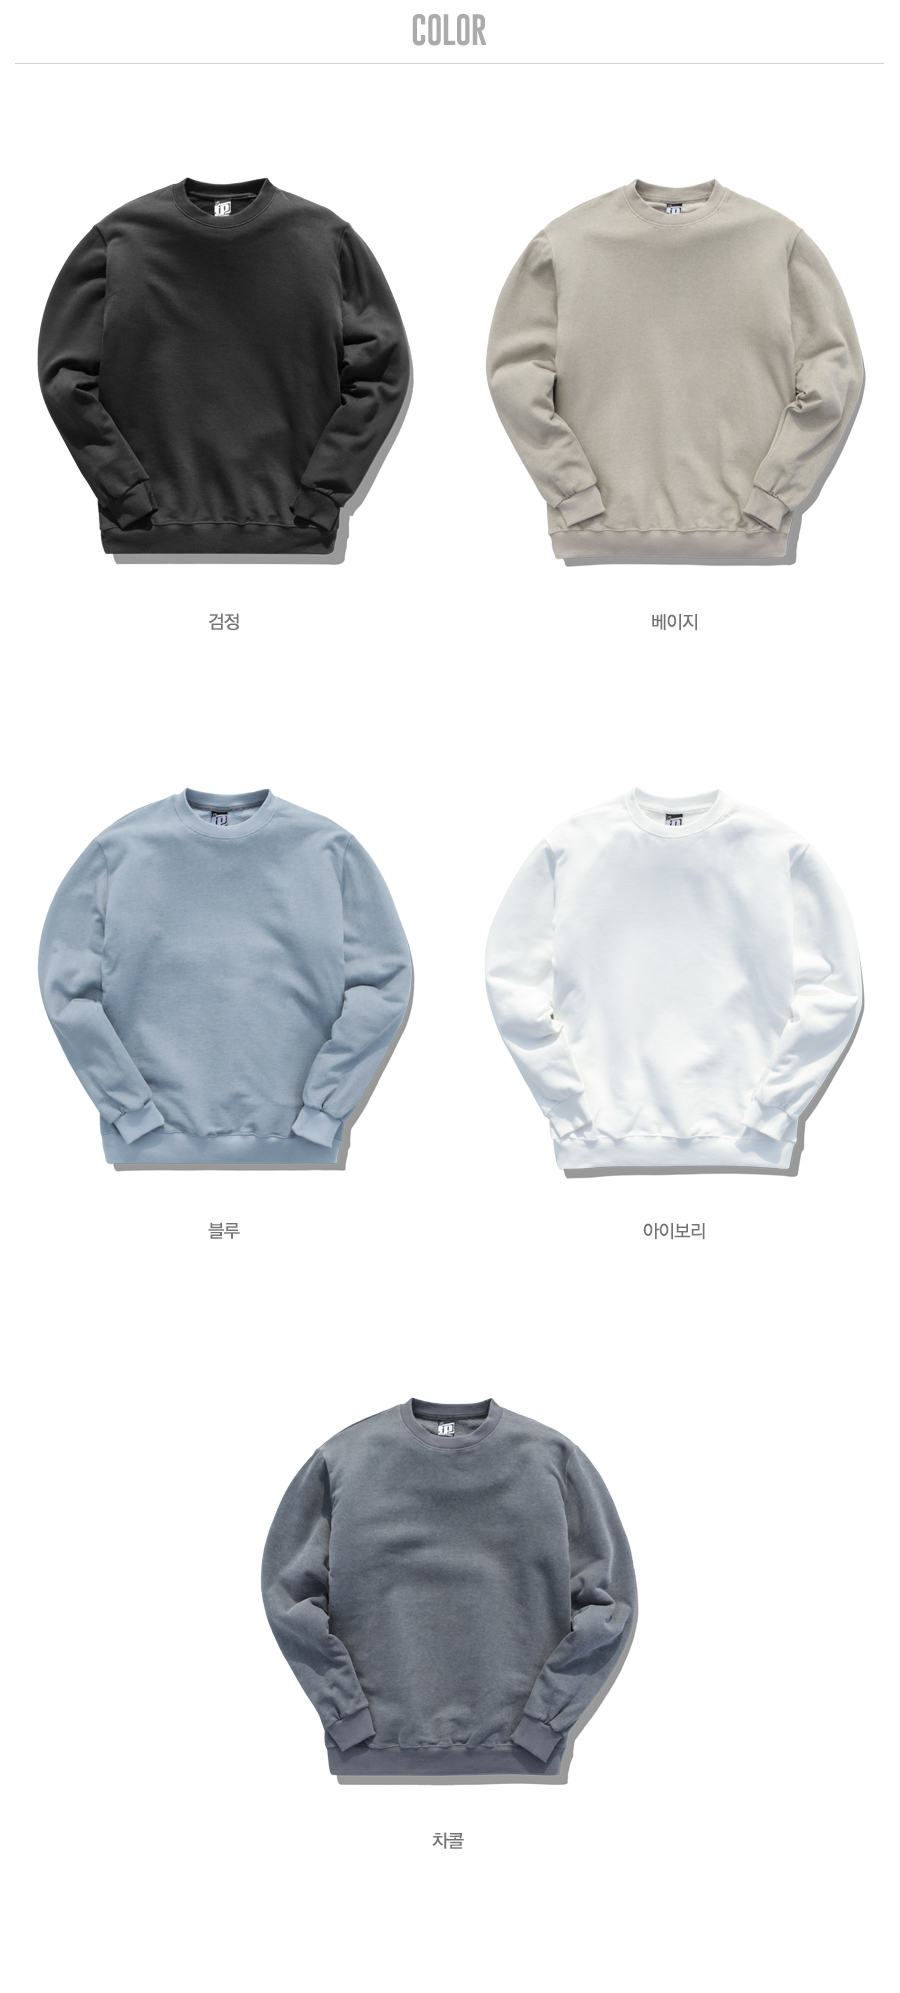 20180912_fp_pigment_sweatshirt_color_uk.jpg